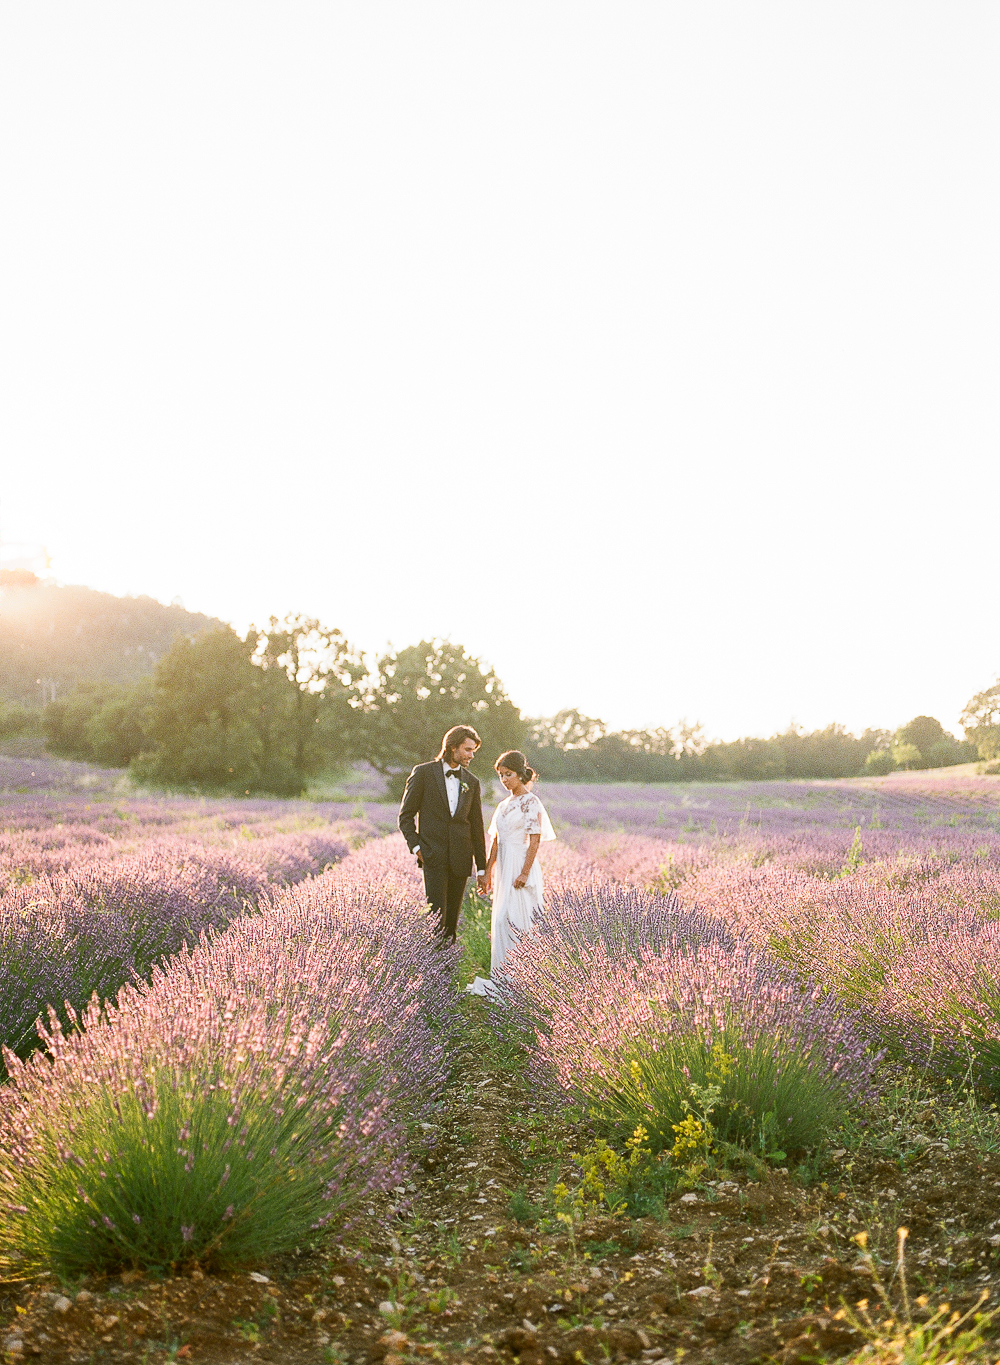 Organic Luxe Elopement Inspiration Alicia Yarrish Photography14